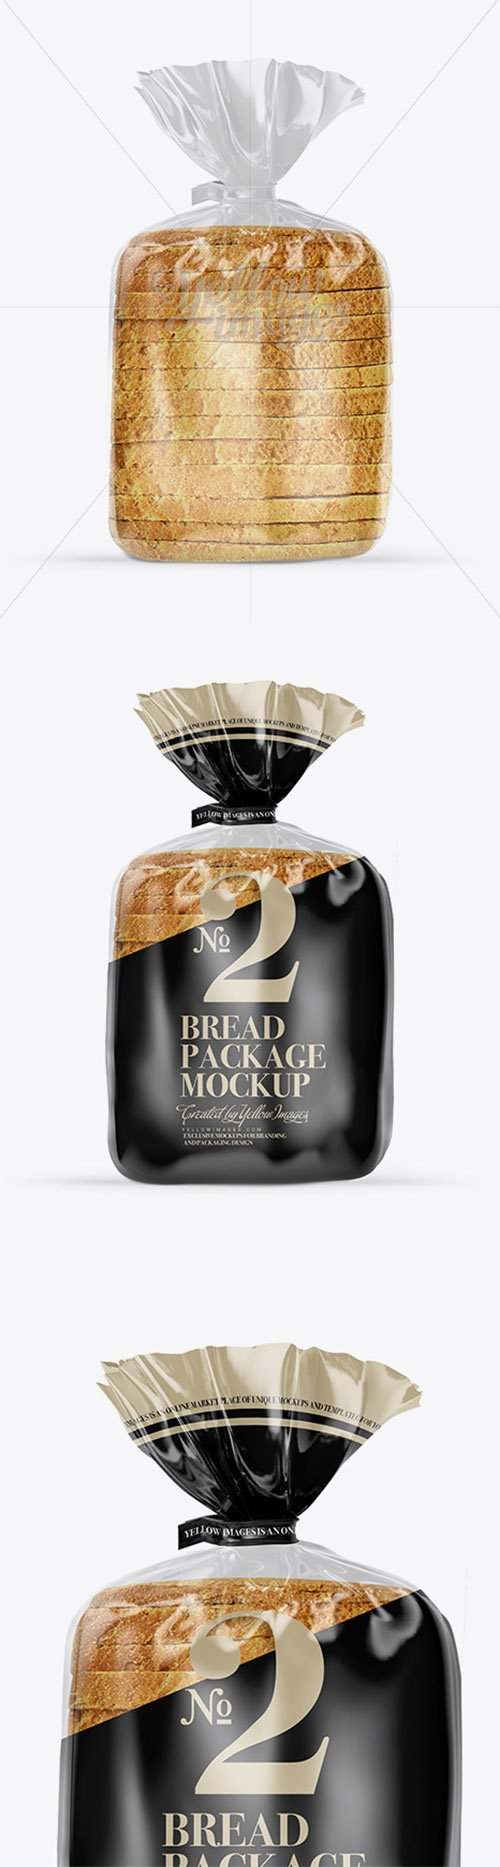 Bread Package With Clip Mockup 18312 TIF